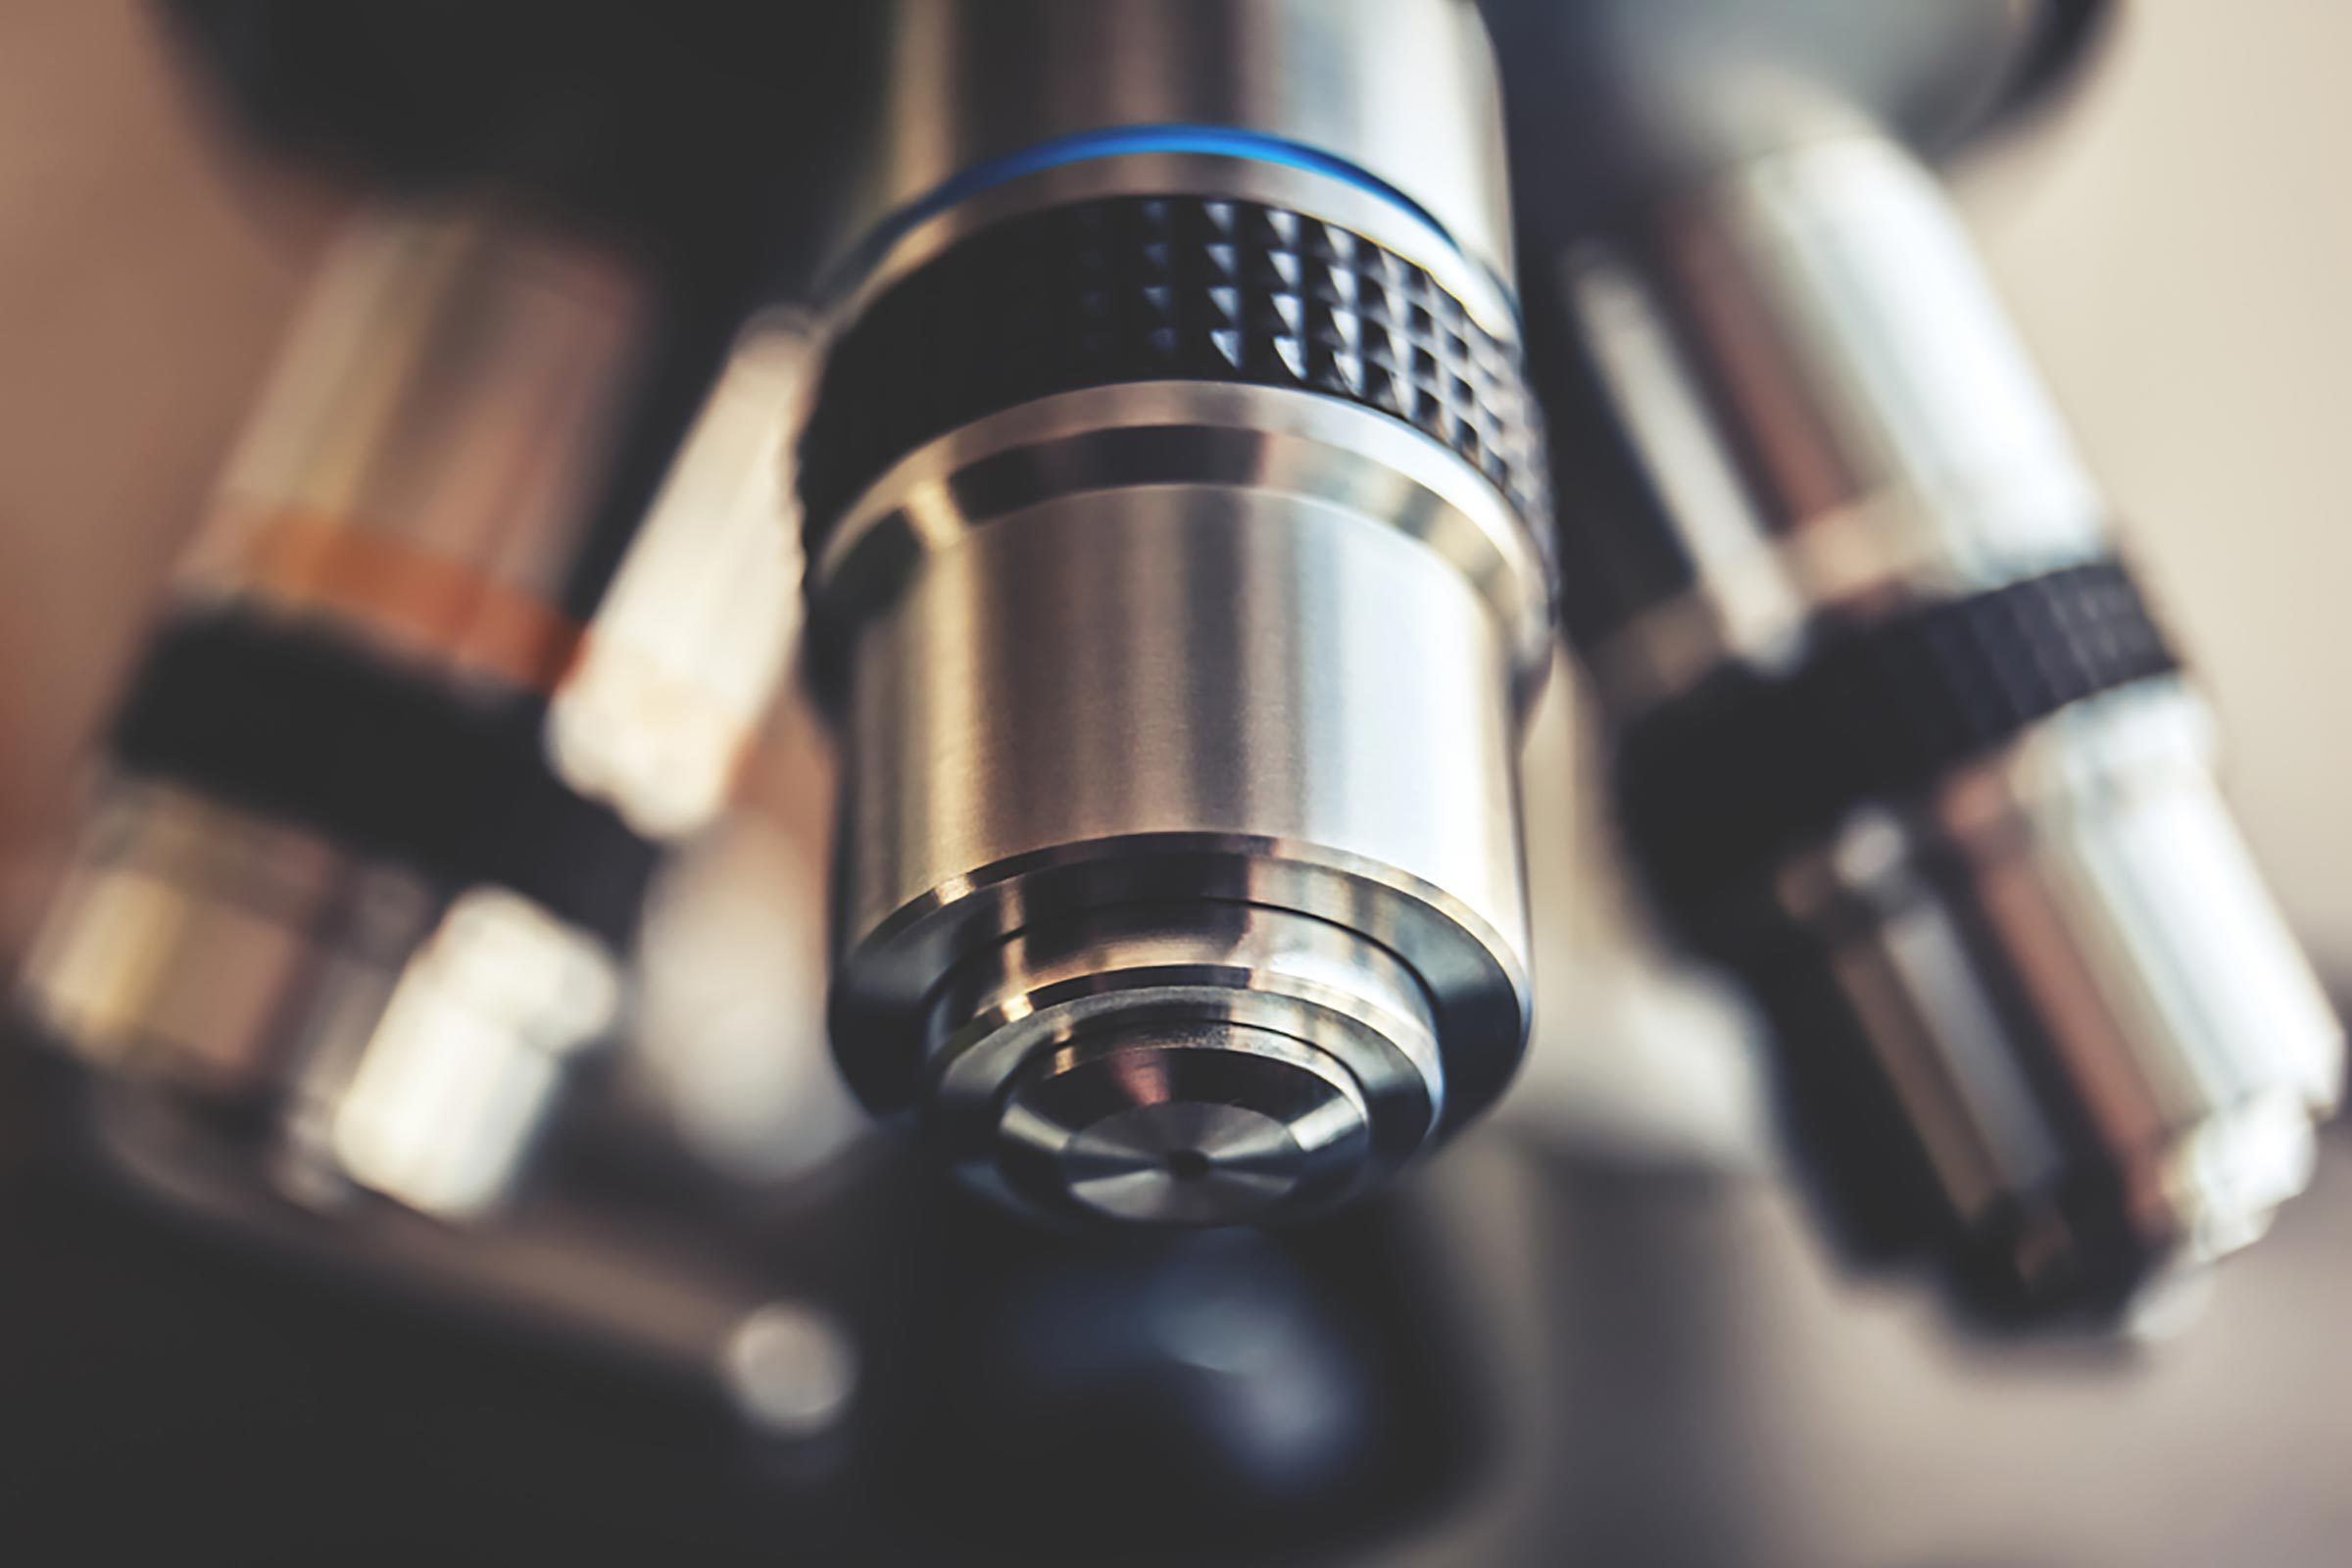 Image of a microscope lens.